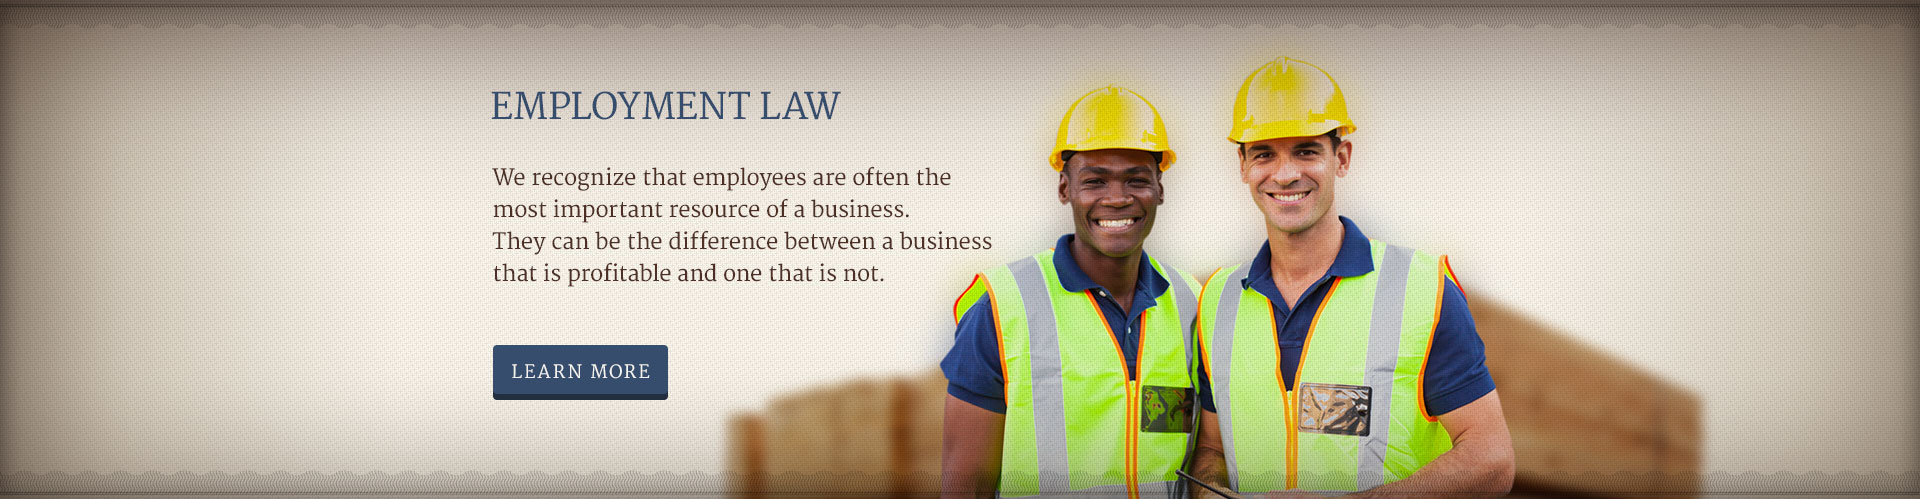 EMPLOYMENT LAW - We recognize that employees are often the most important resource of a business. They can be the difference between a business that is profitable and one that is not.